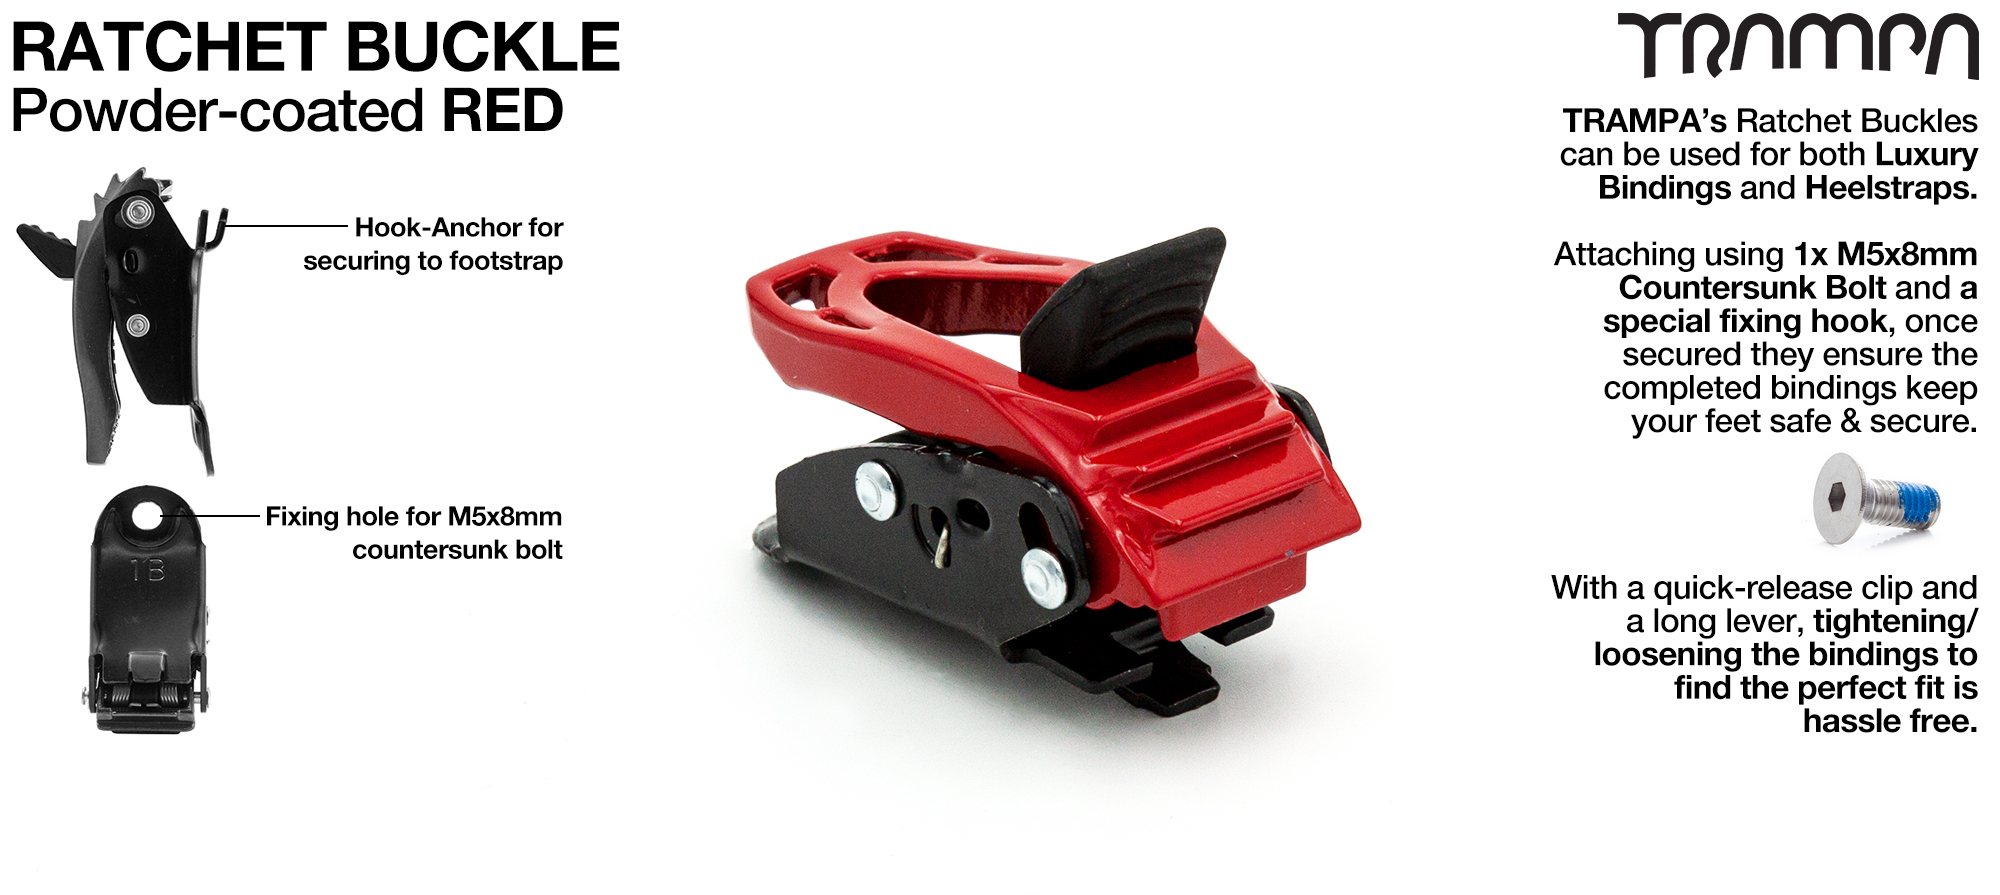 Ratchet Buckle Powder coated Red